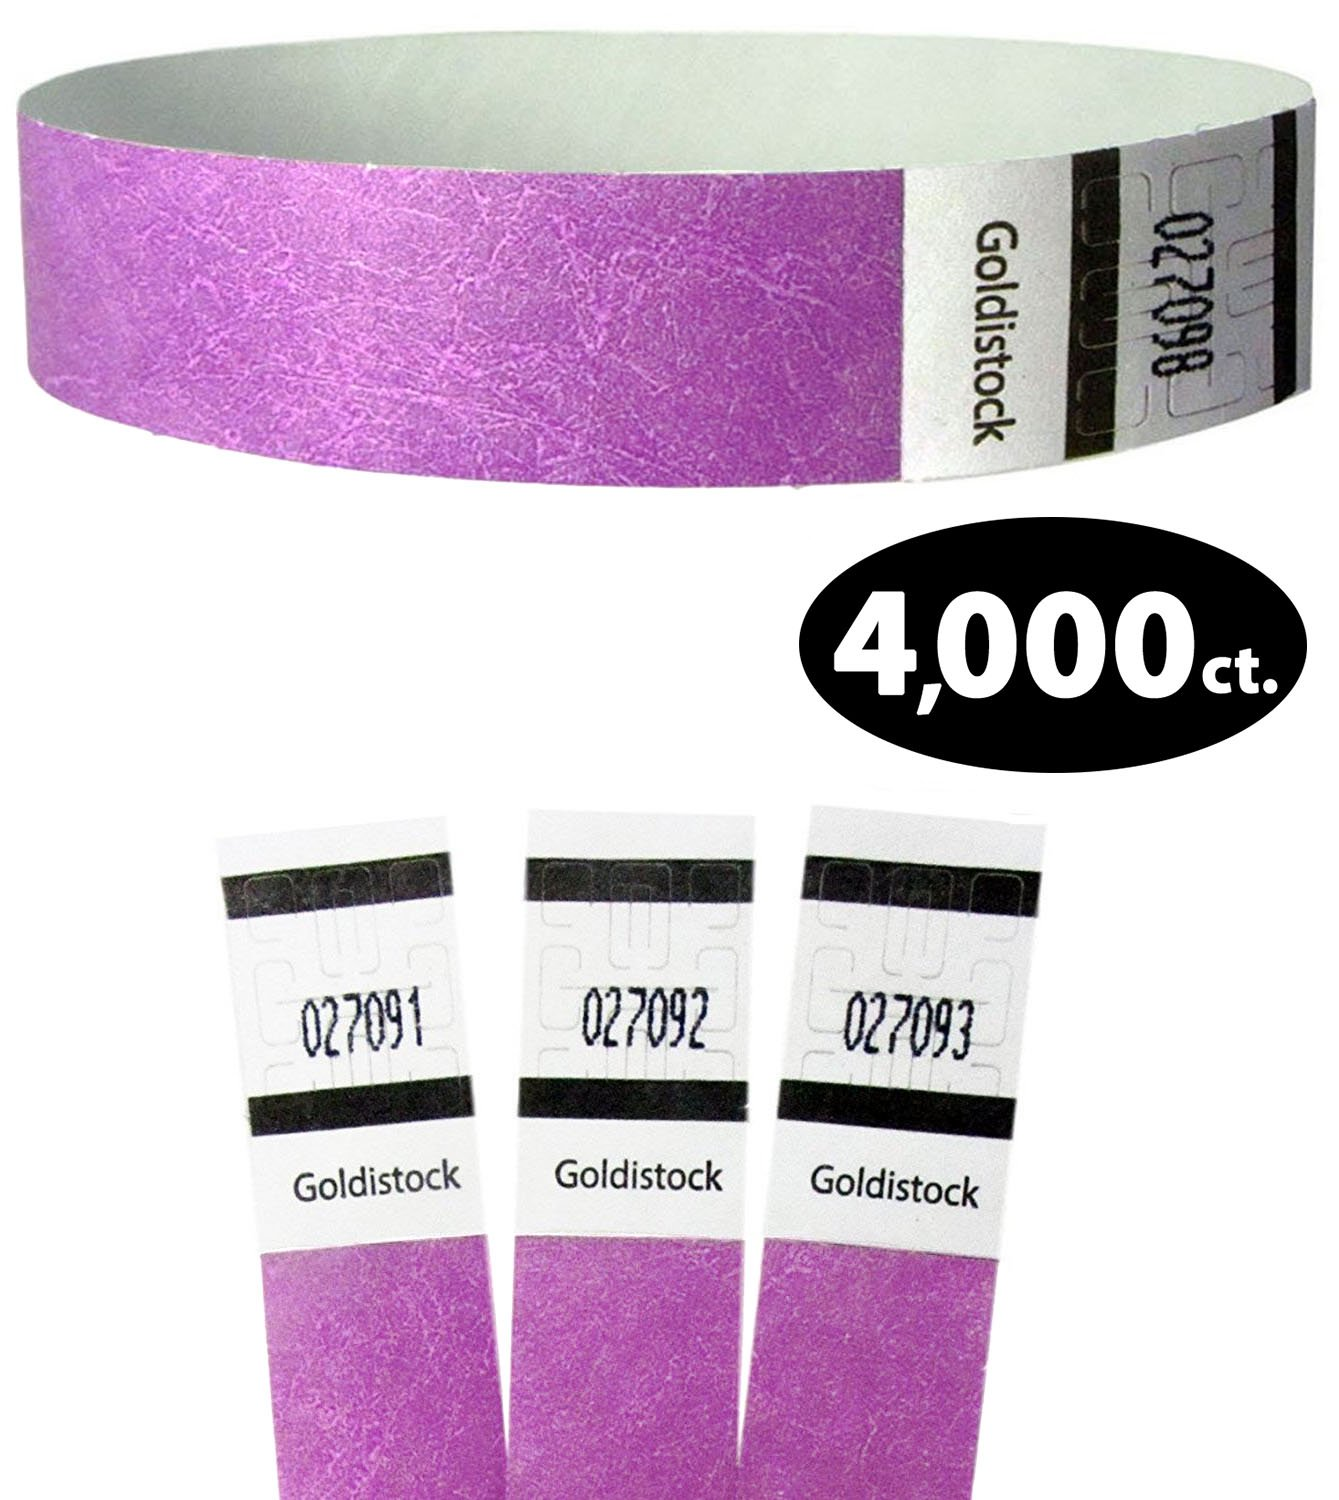 Goldistock Original Series - 3/4'' Tyvek Wristbands Royal Neon Purple 4,000 Count Value Pack - Event Identification Bands (Paper - Like Texture)